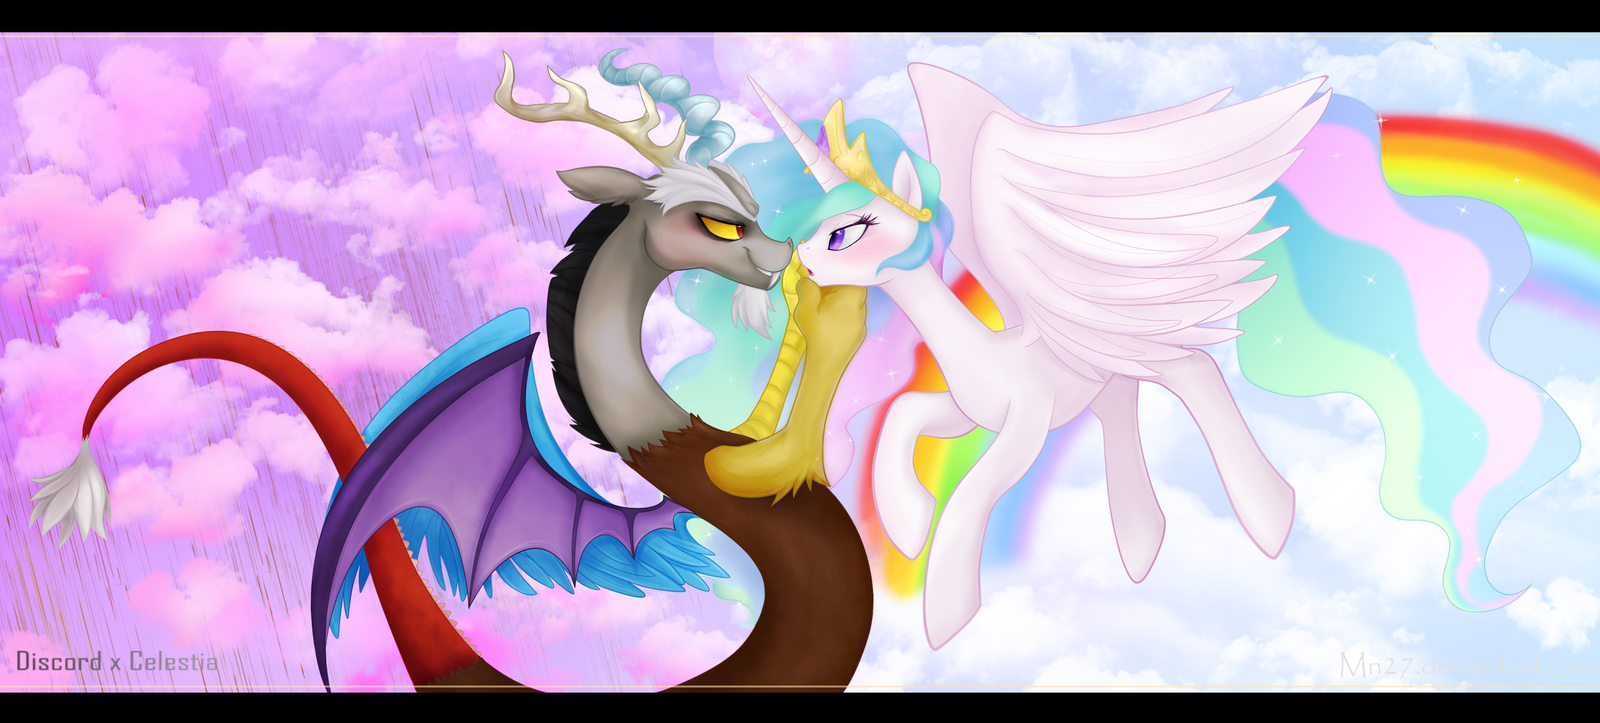 Rainbows and Chocolate rain by Mn27 on DeviantArt